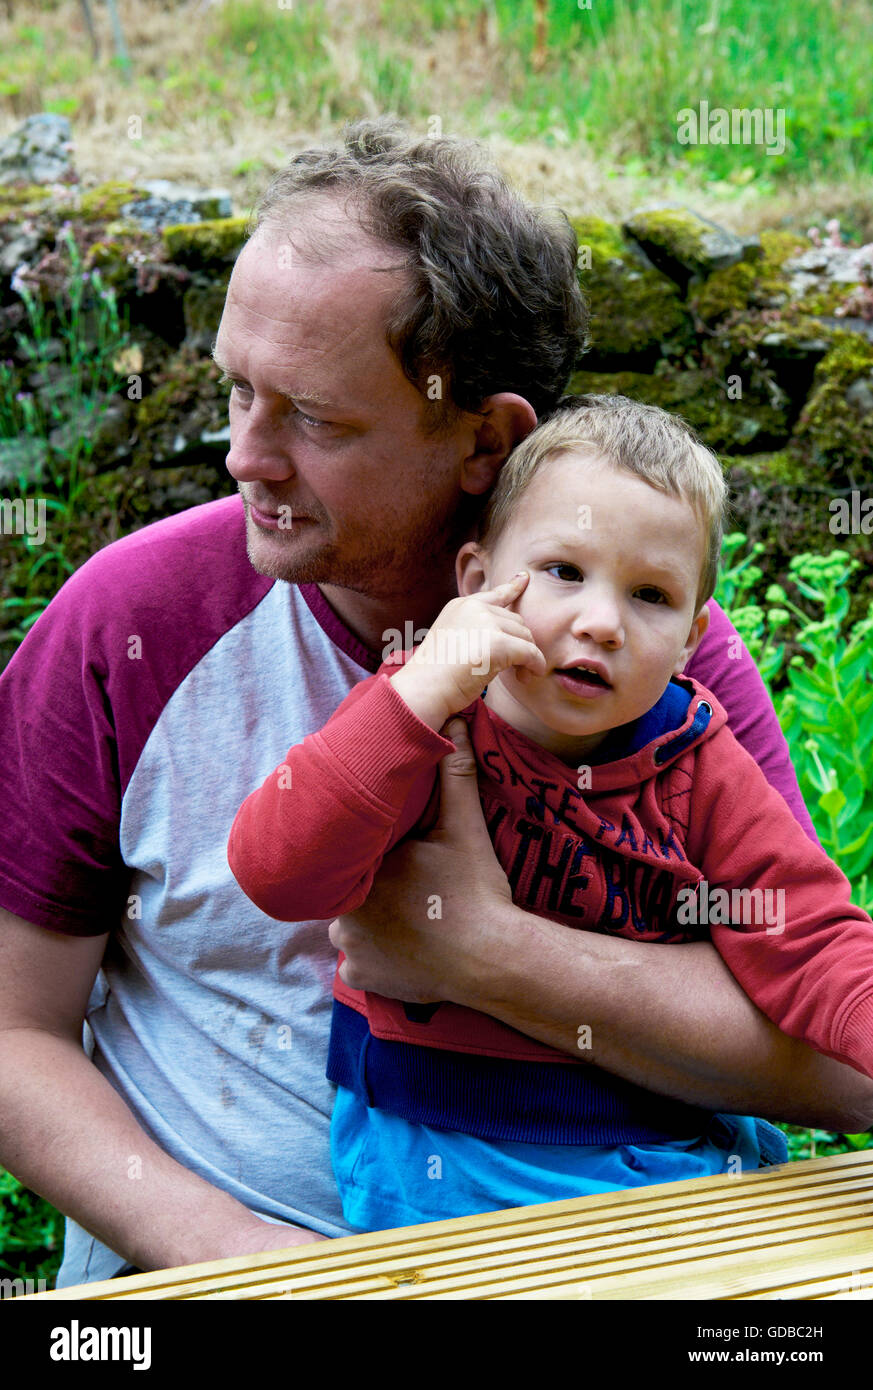 Man sitting with two year old son, UK - Stock Image